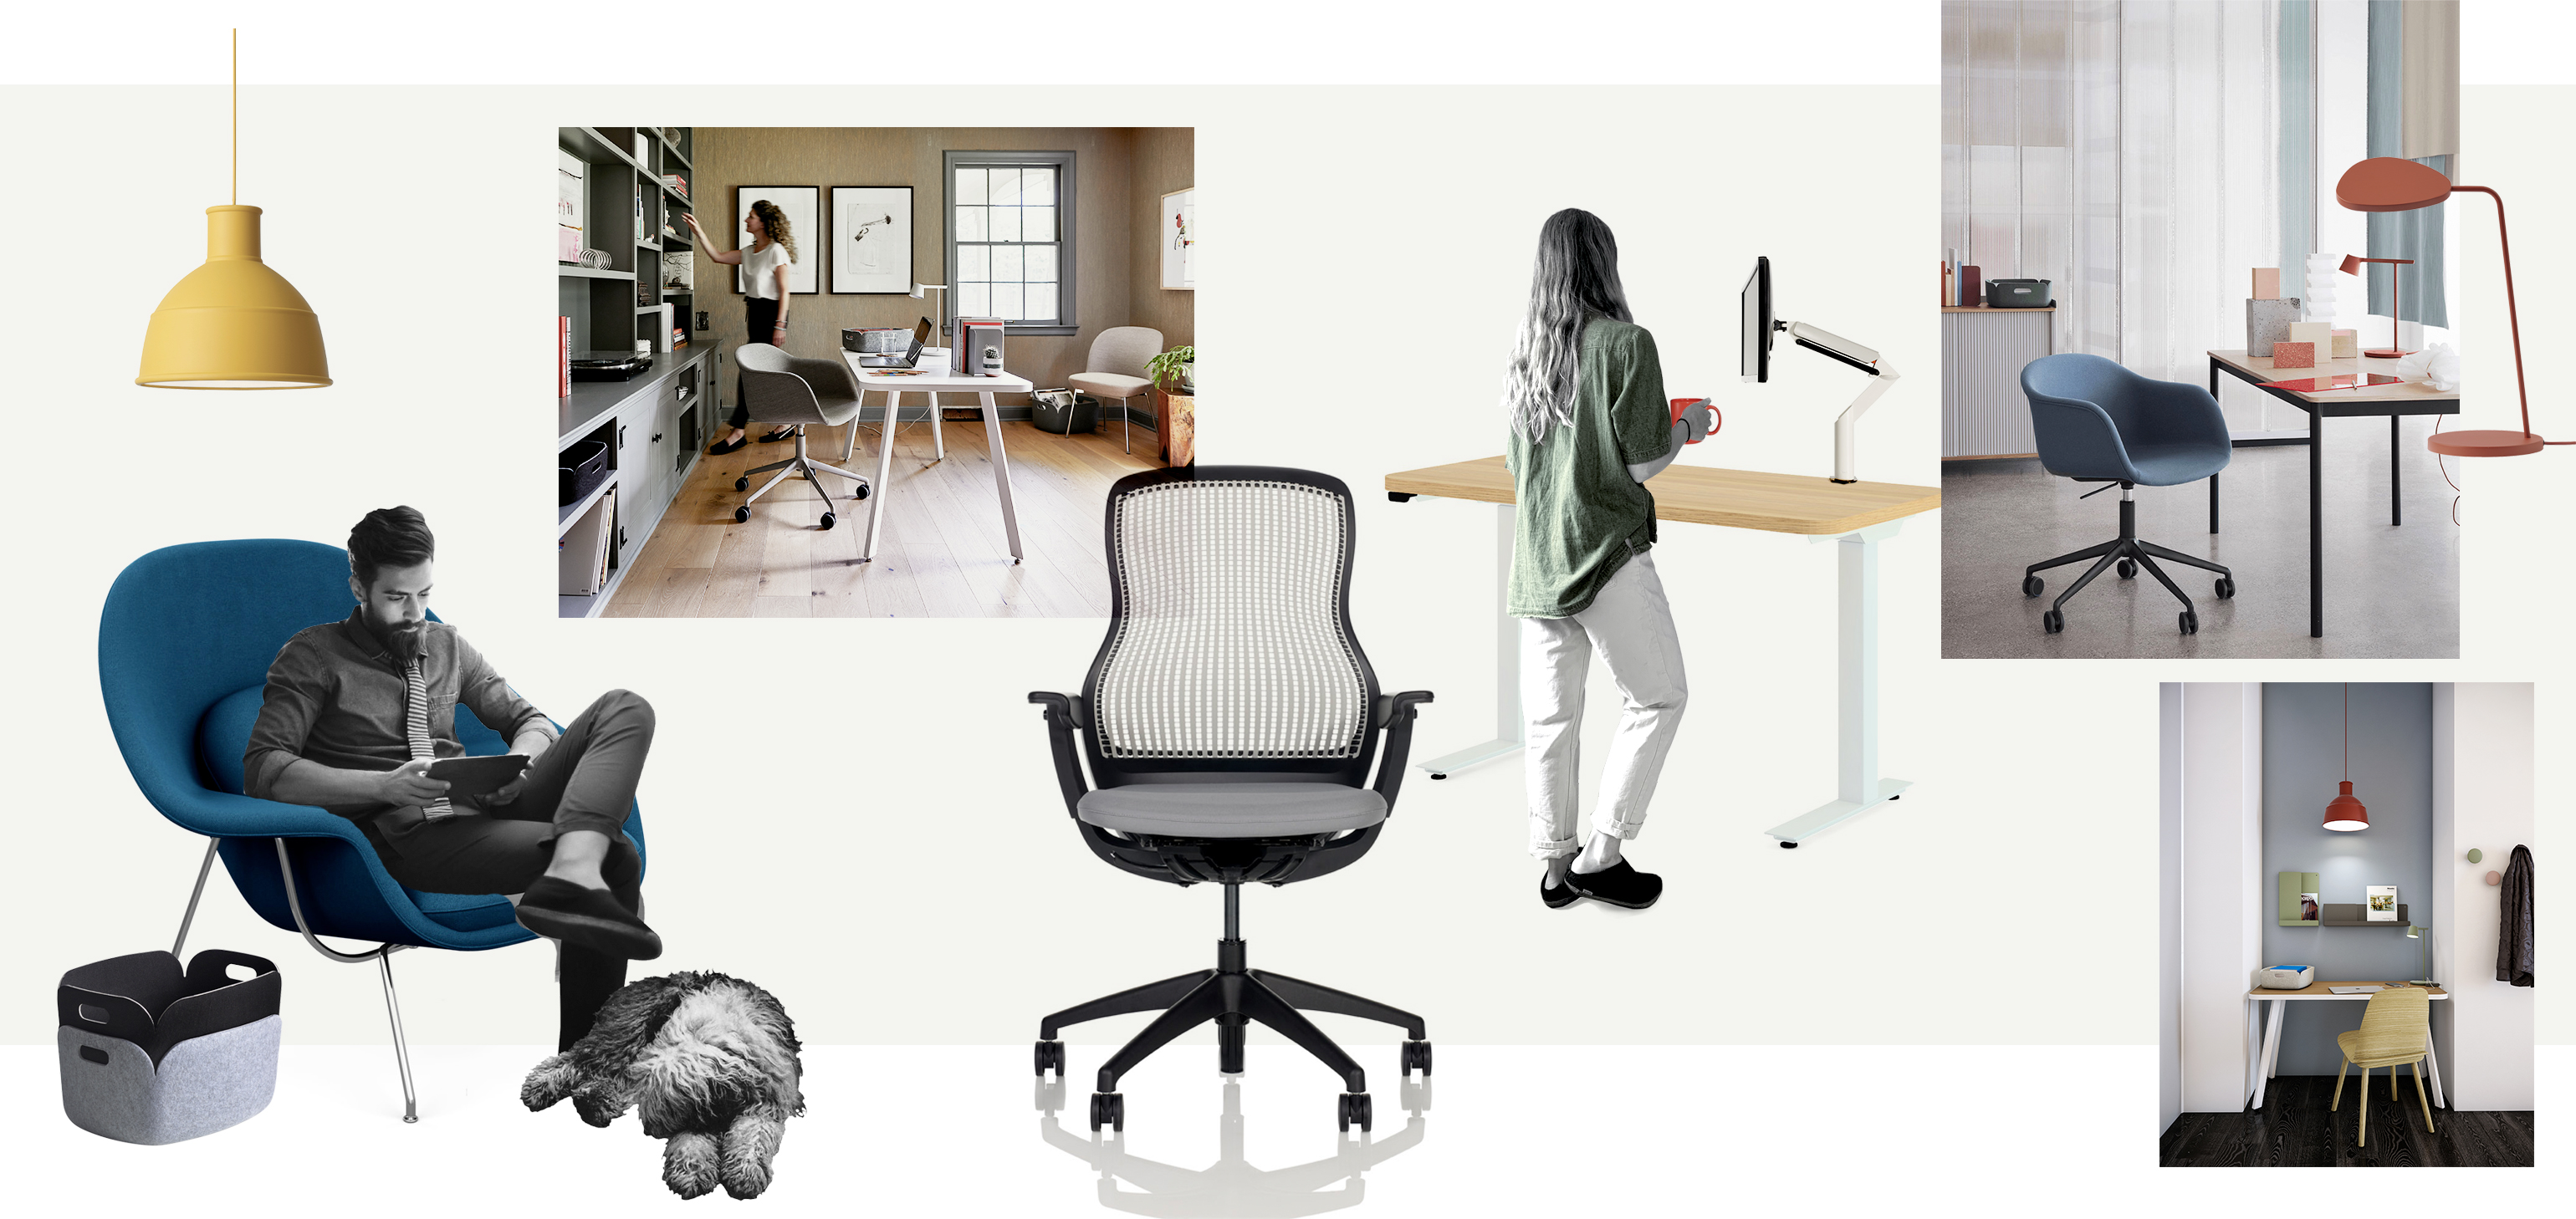 Knoll + Muuto Work from Home Office Products the Ship 1-3 Days